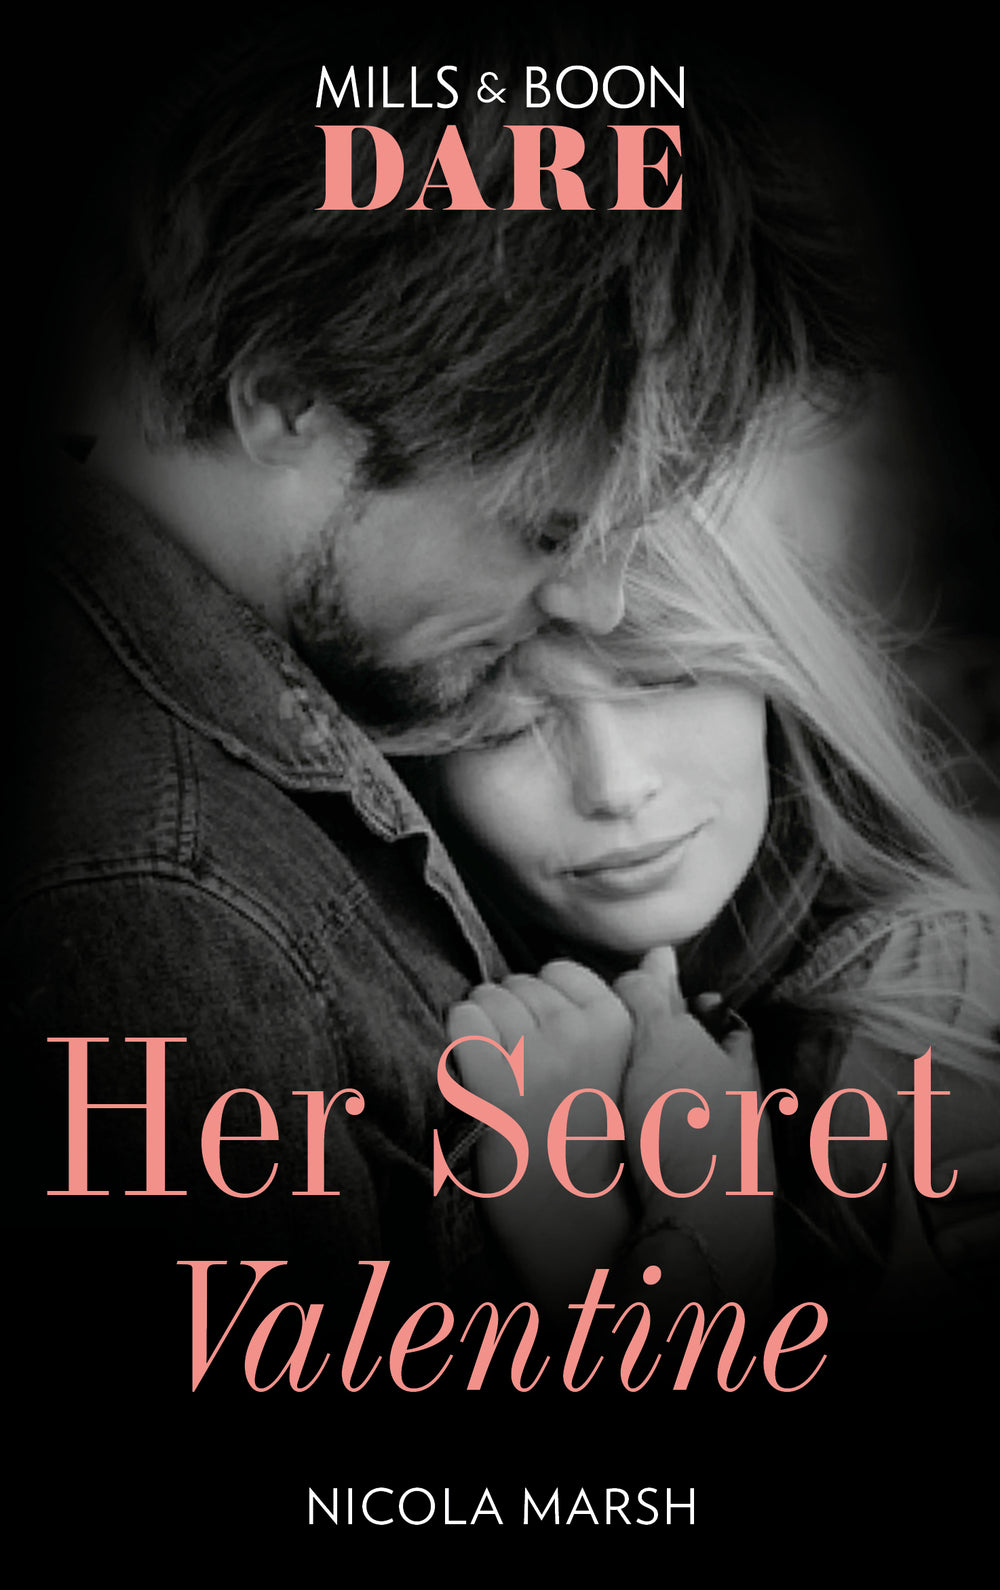 Her Secret Valentine - Chapter 1